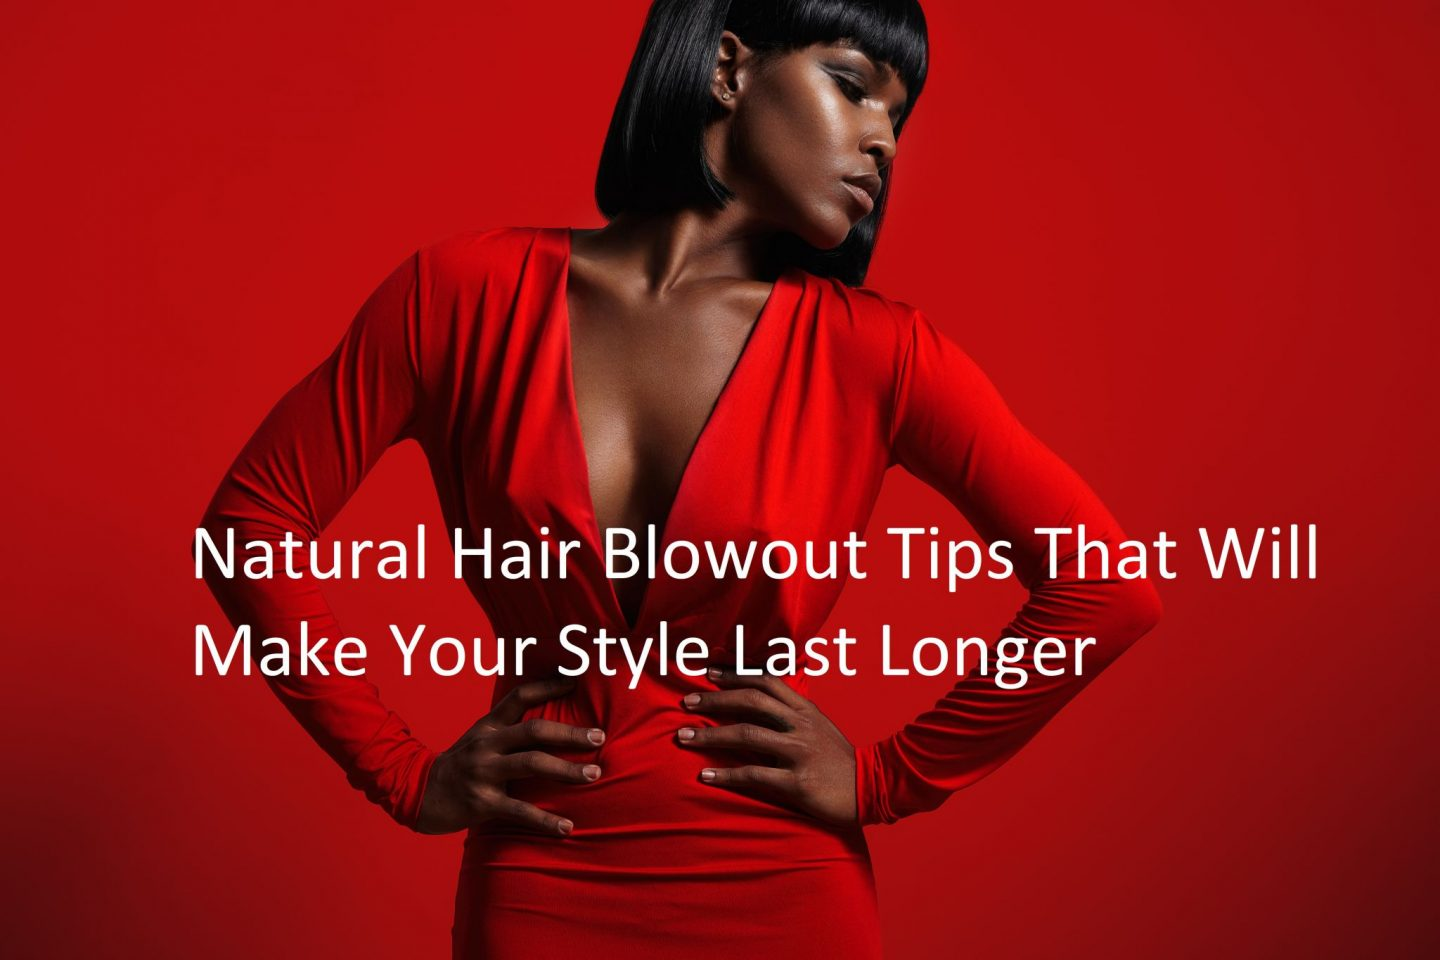 Products To Make A Natural Hair Blowout Last